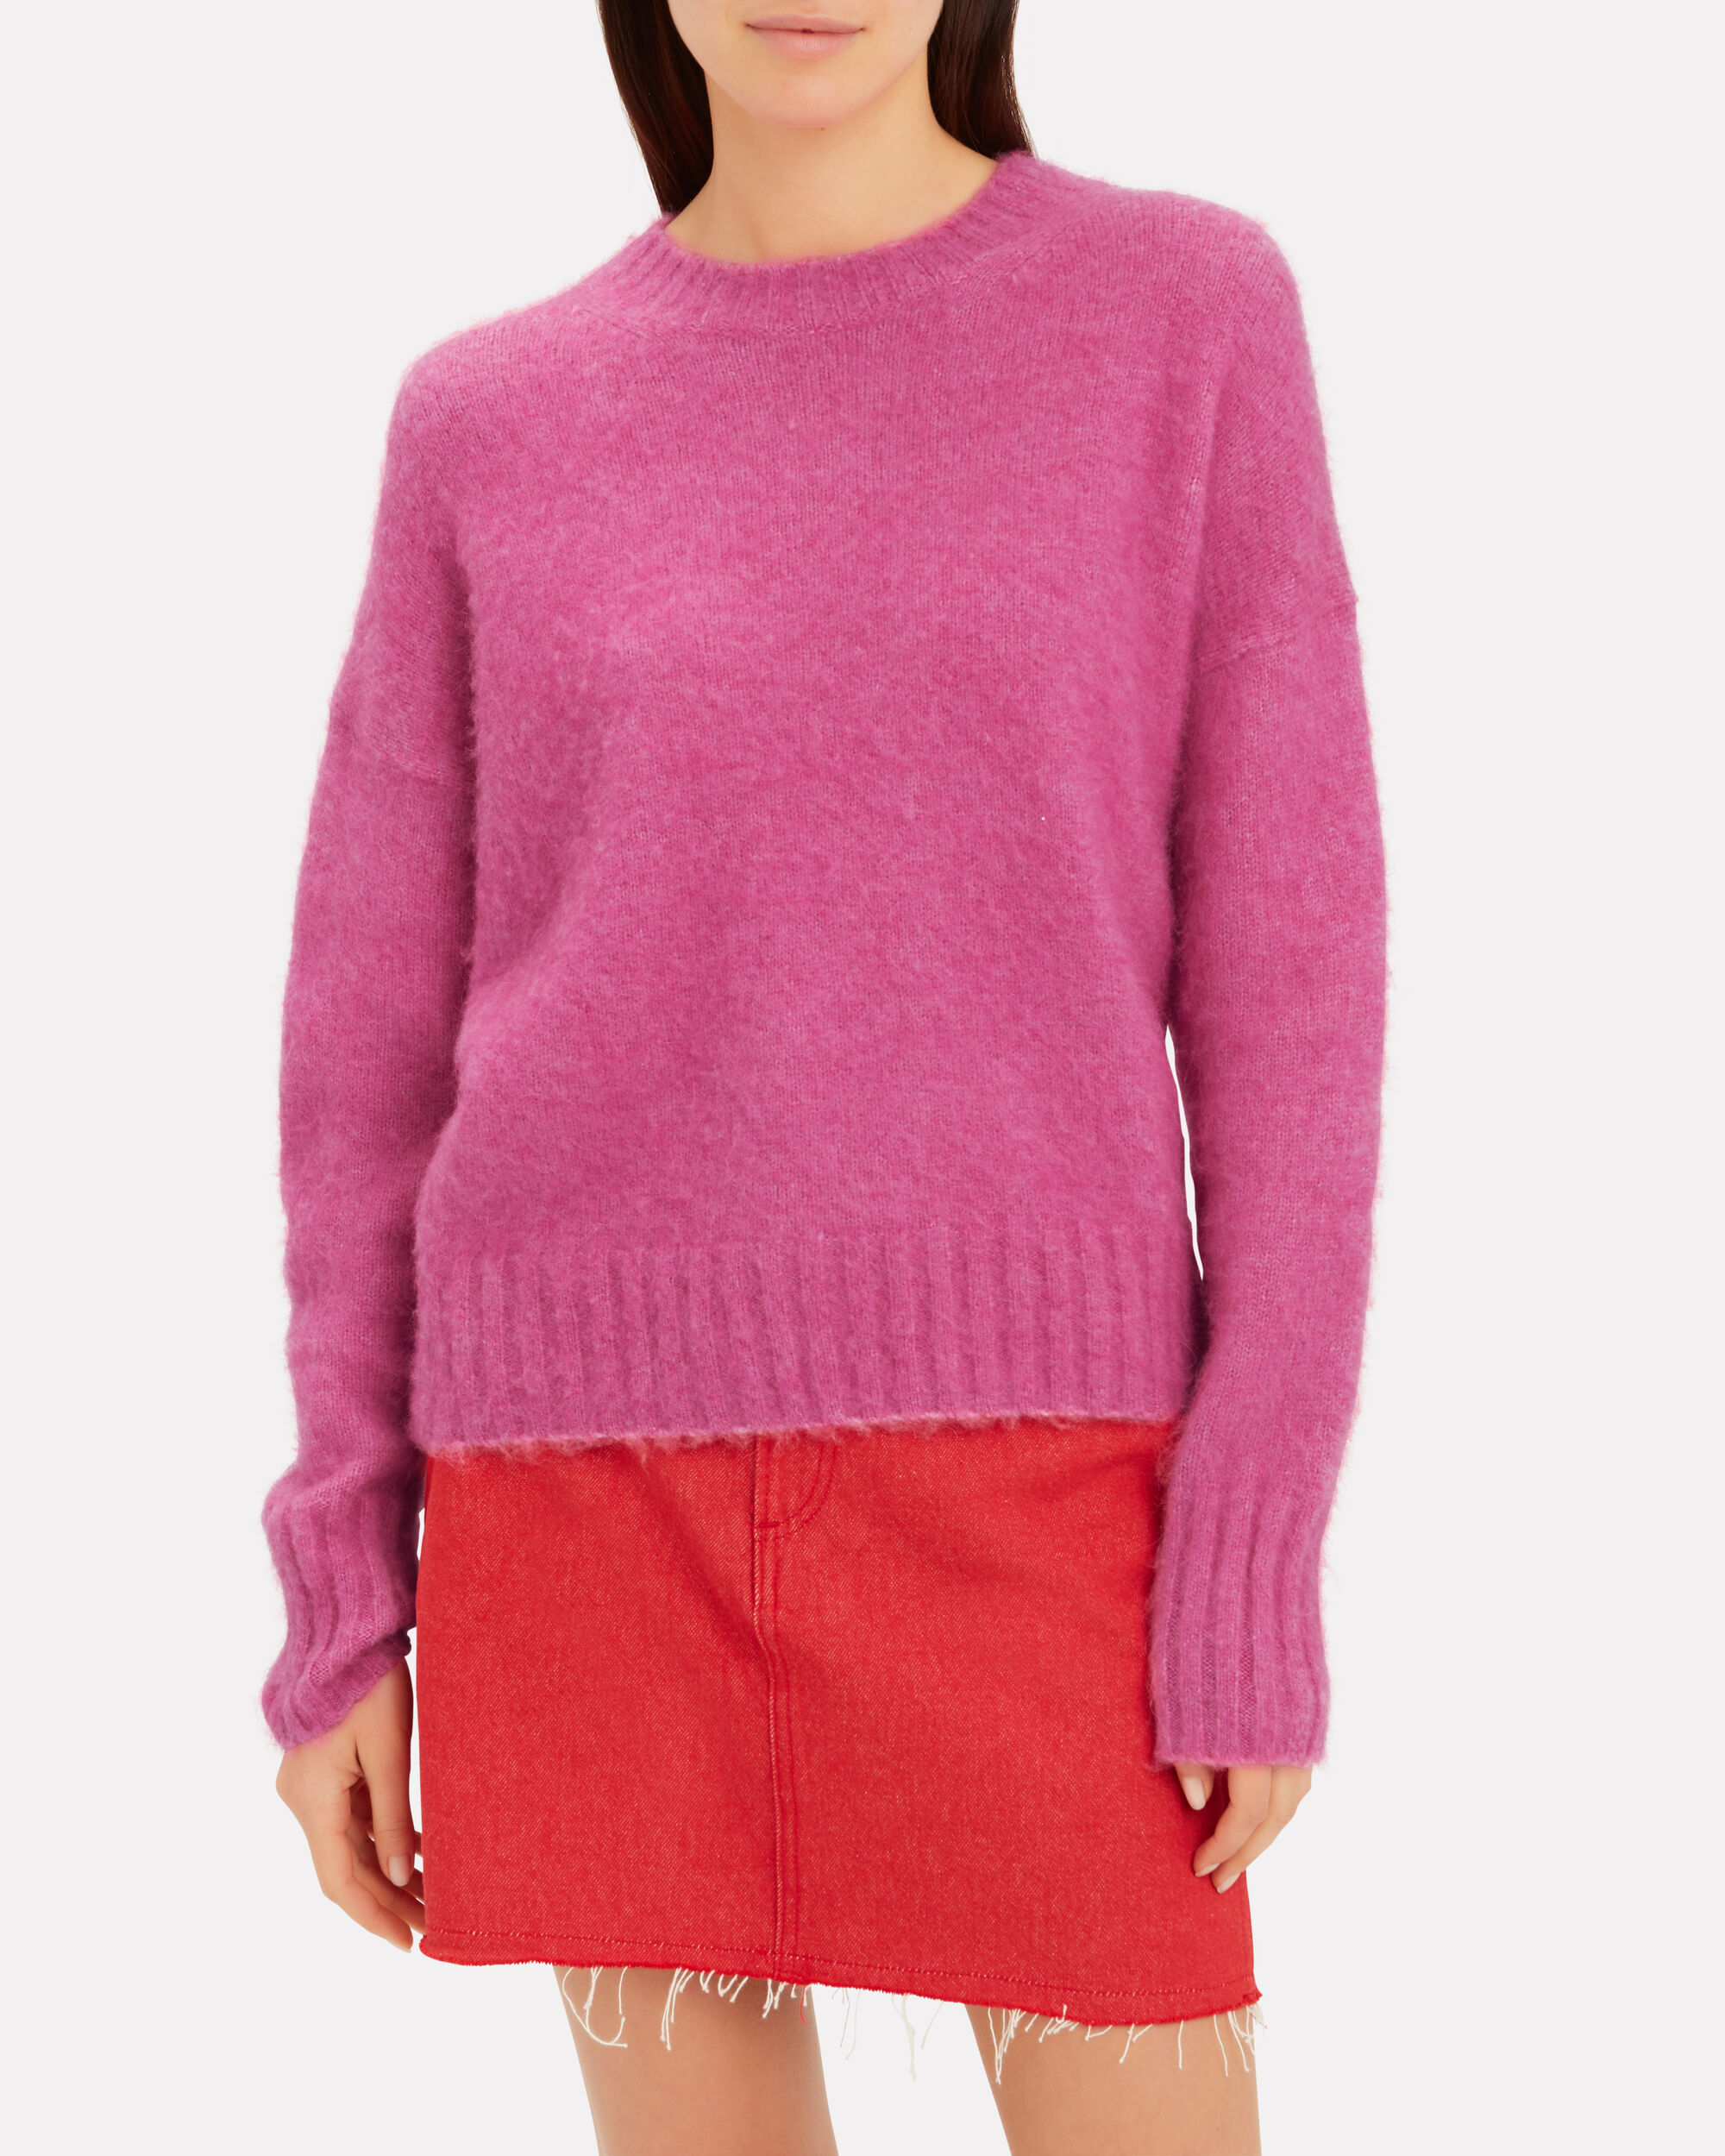 Brushed Wool Pink Sweater, PINK, hi-res